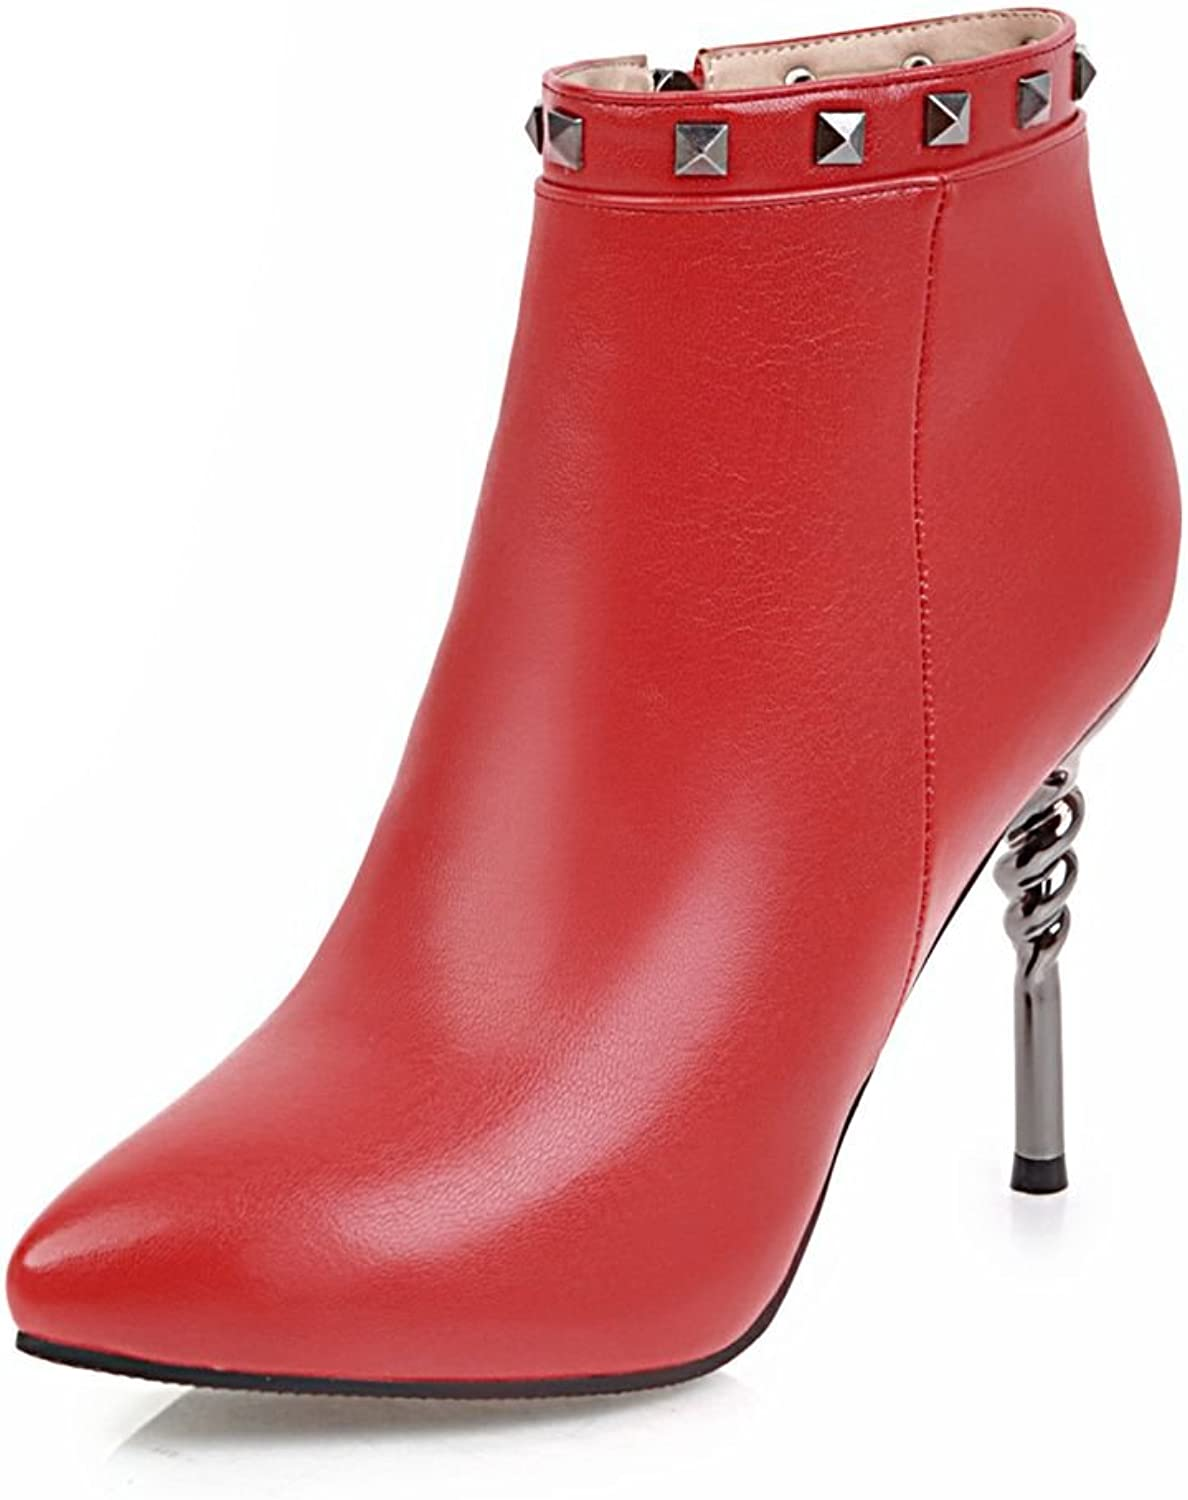 SaraIris Rivet Thin Heels Solid Pointed Toe Zipper Ankle Boots for Women